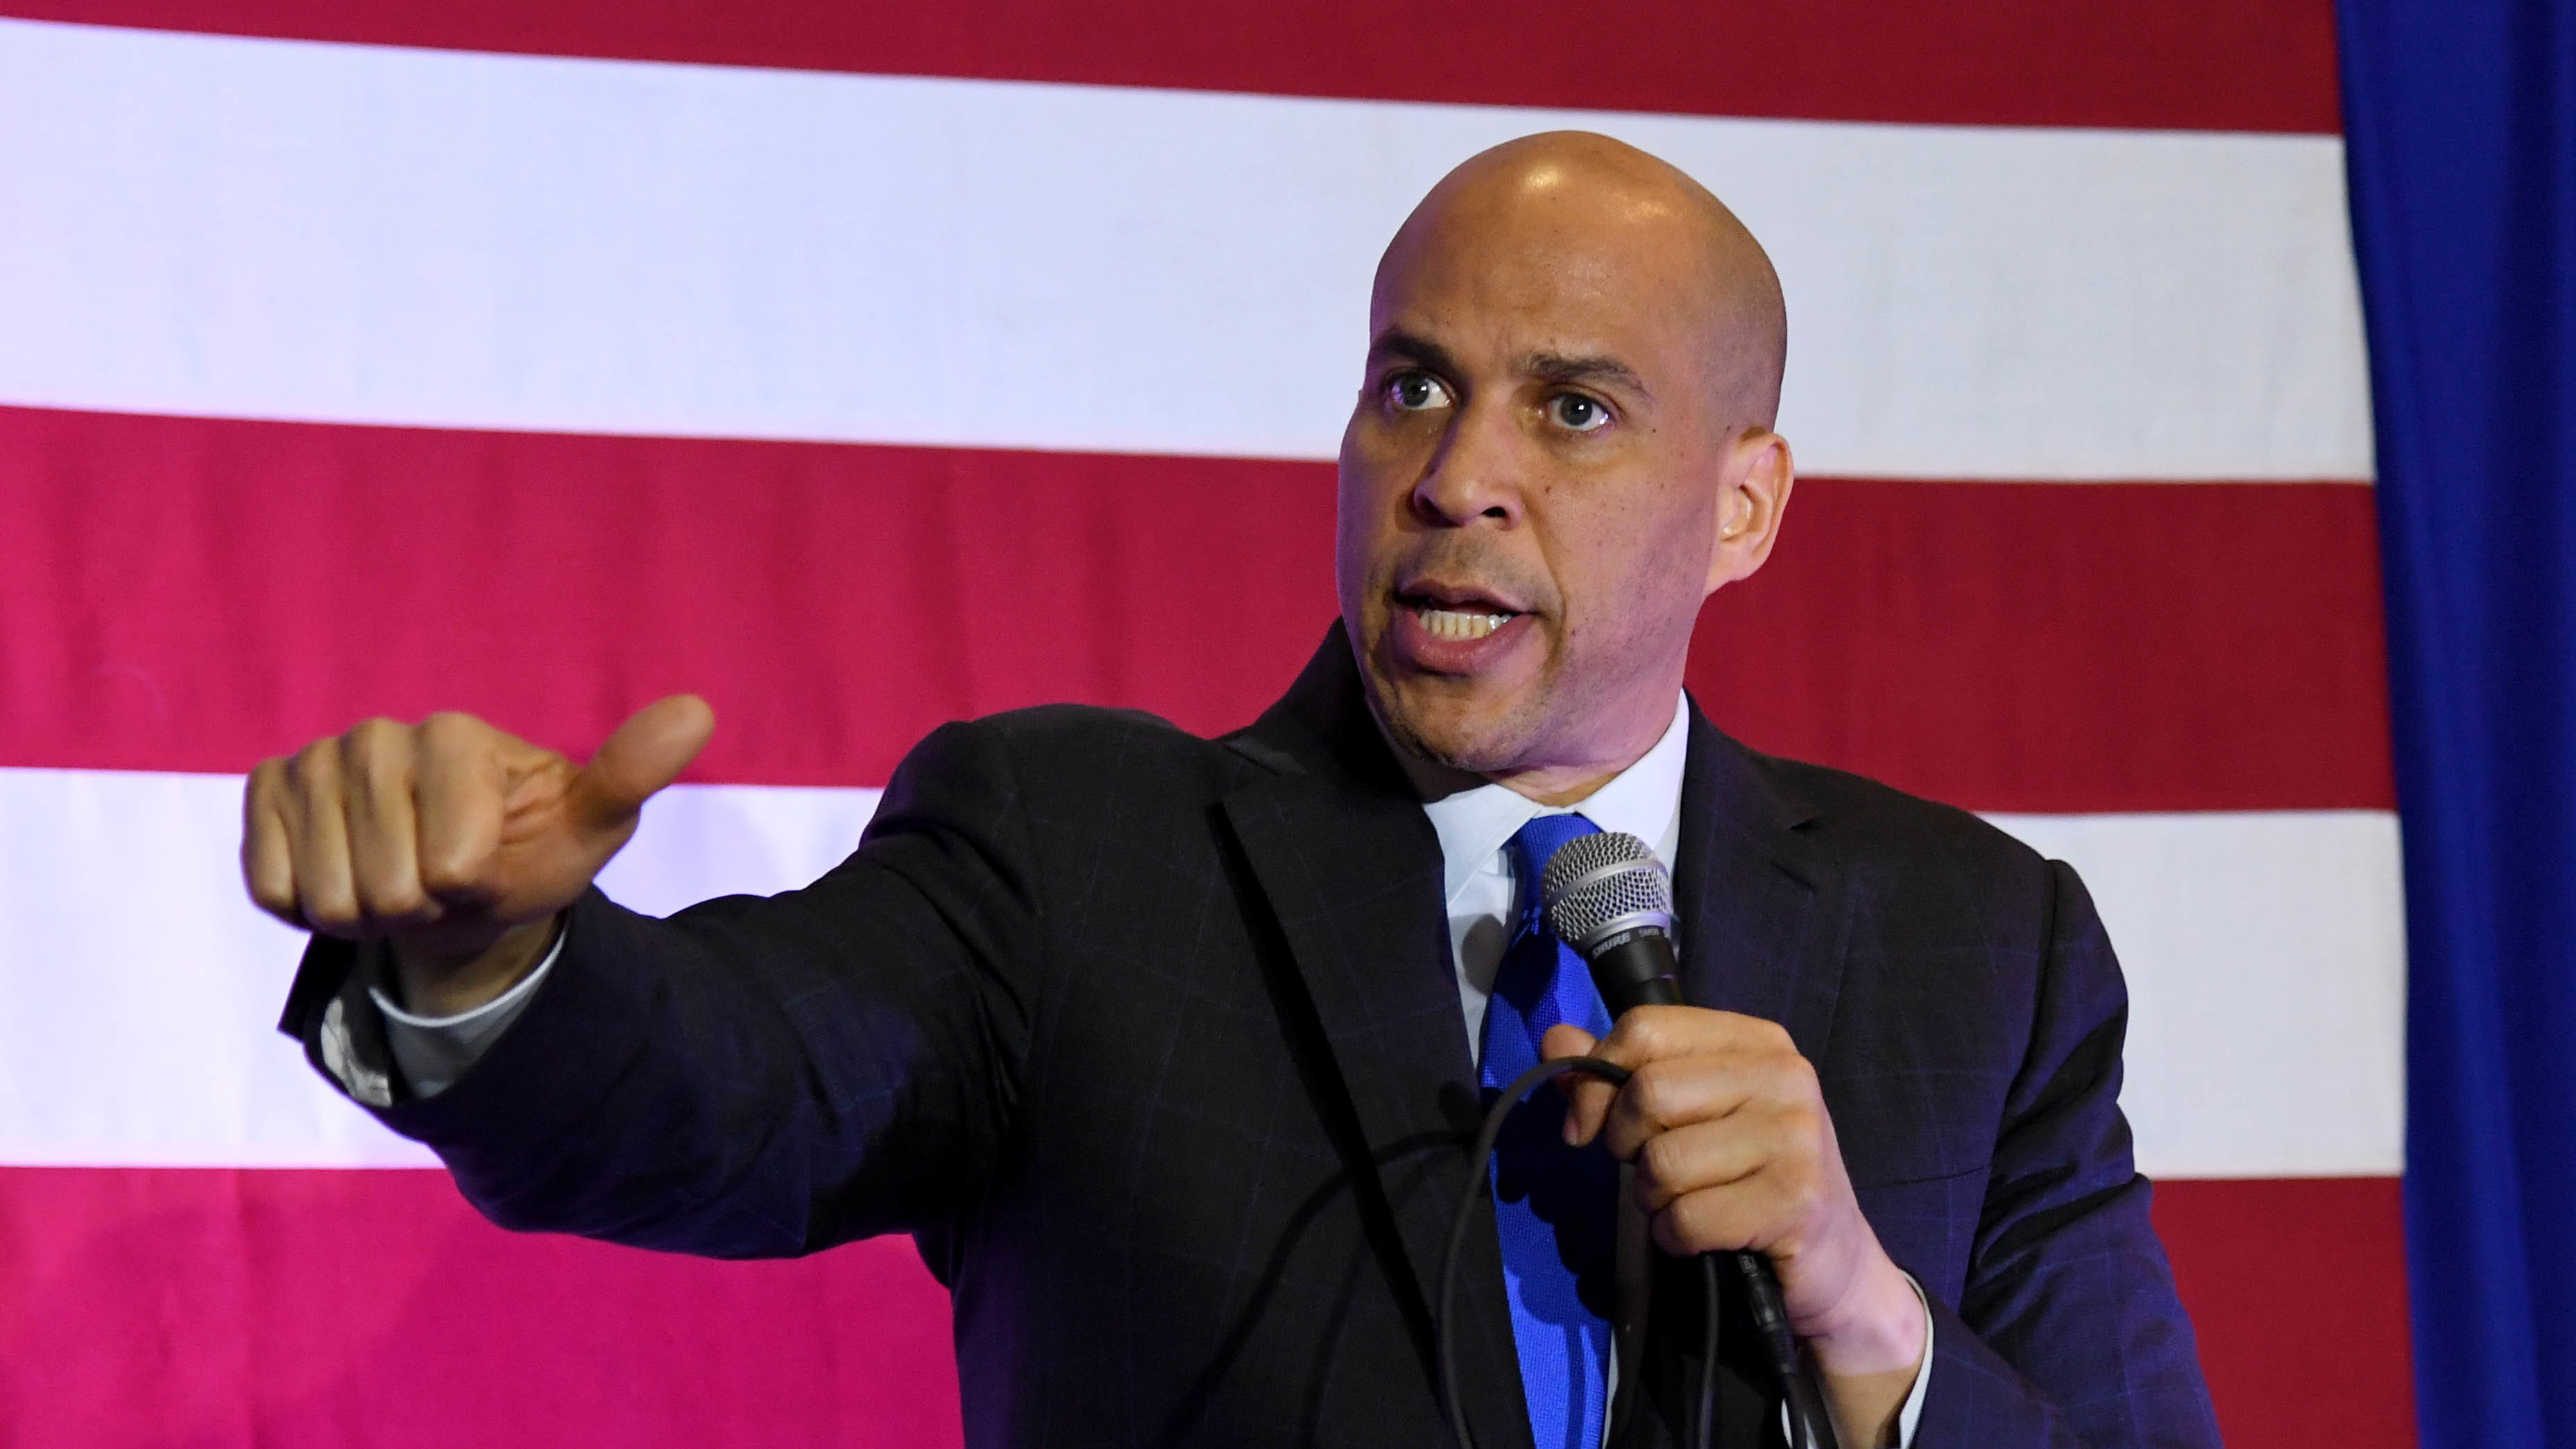 February 2020 Calendar World Of Warships Cory Booker Wants To Block Use Of Census Citizenship Data To Draw